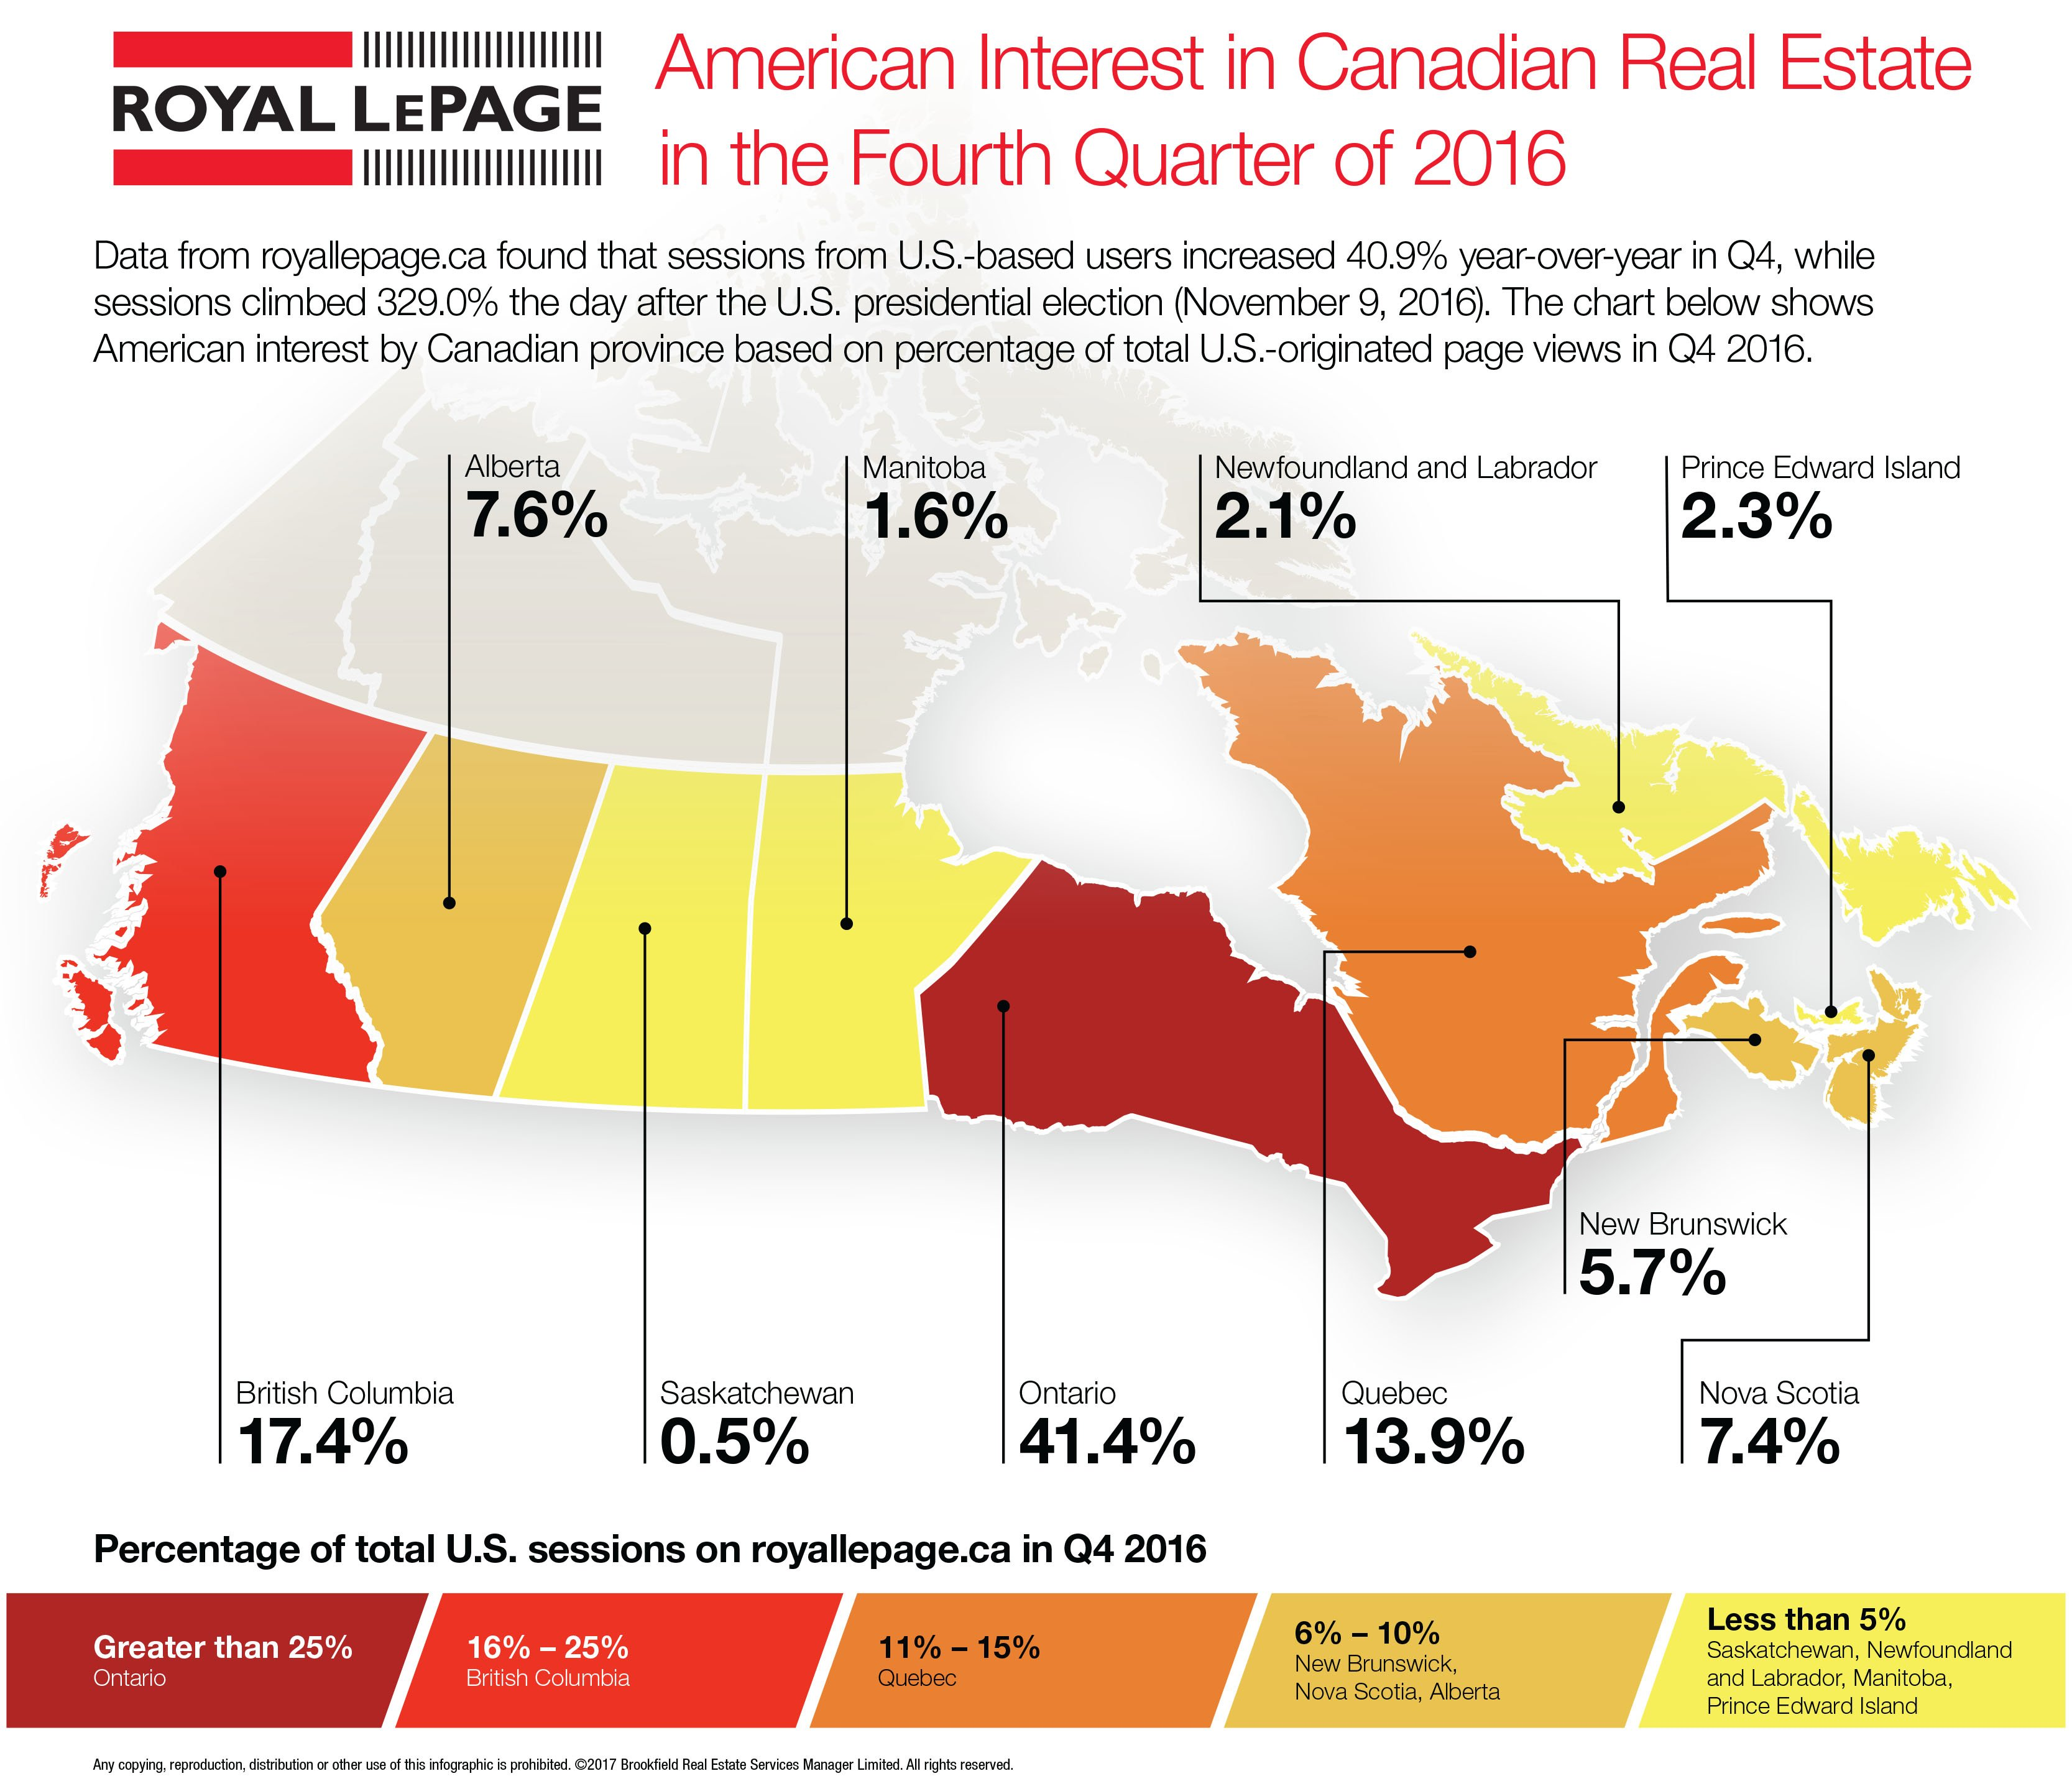 American Interest in Canadian Real Estate in the Fourth Quarter of 2016 (Royal LePage)